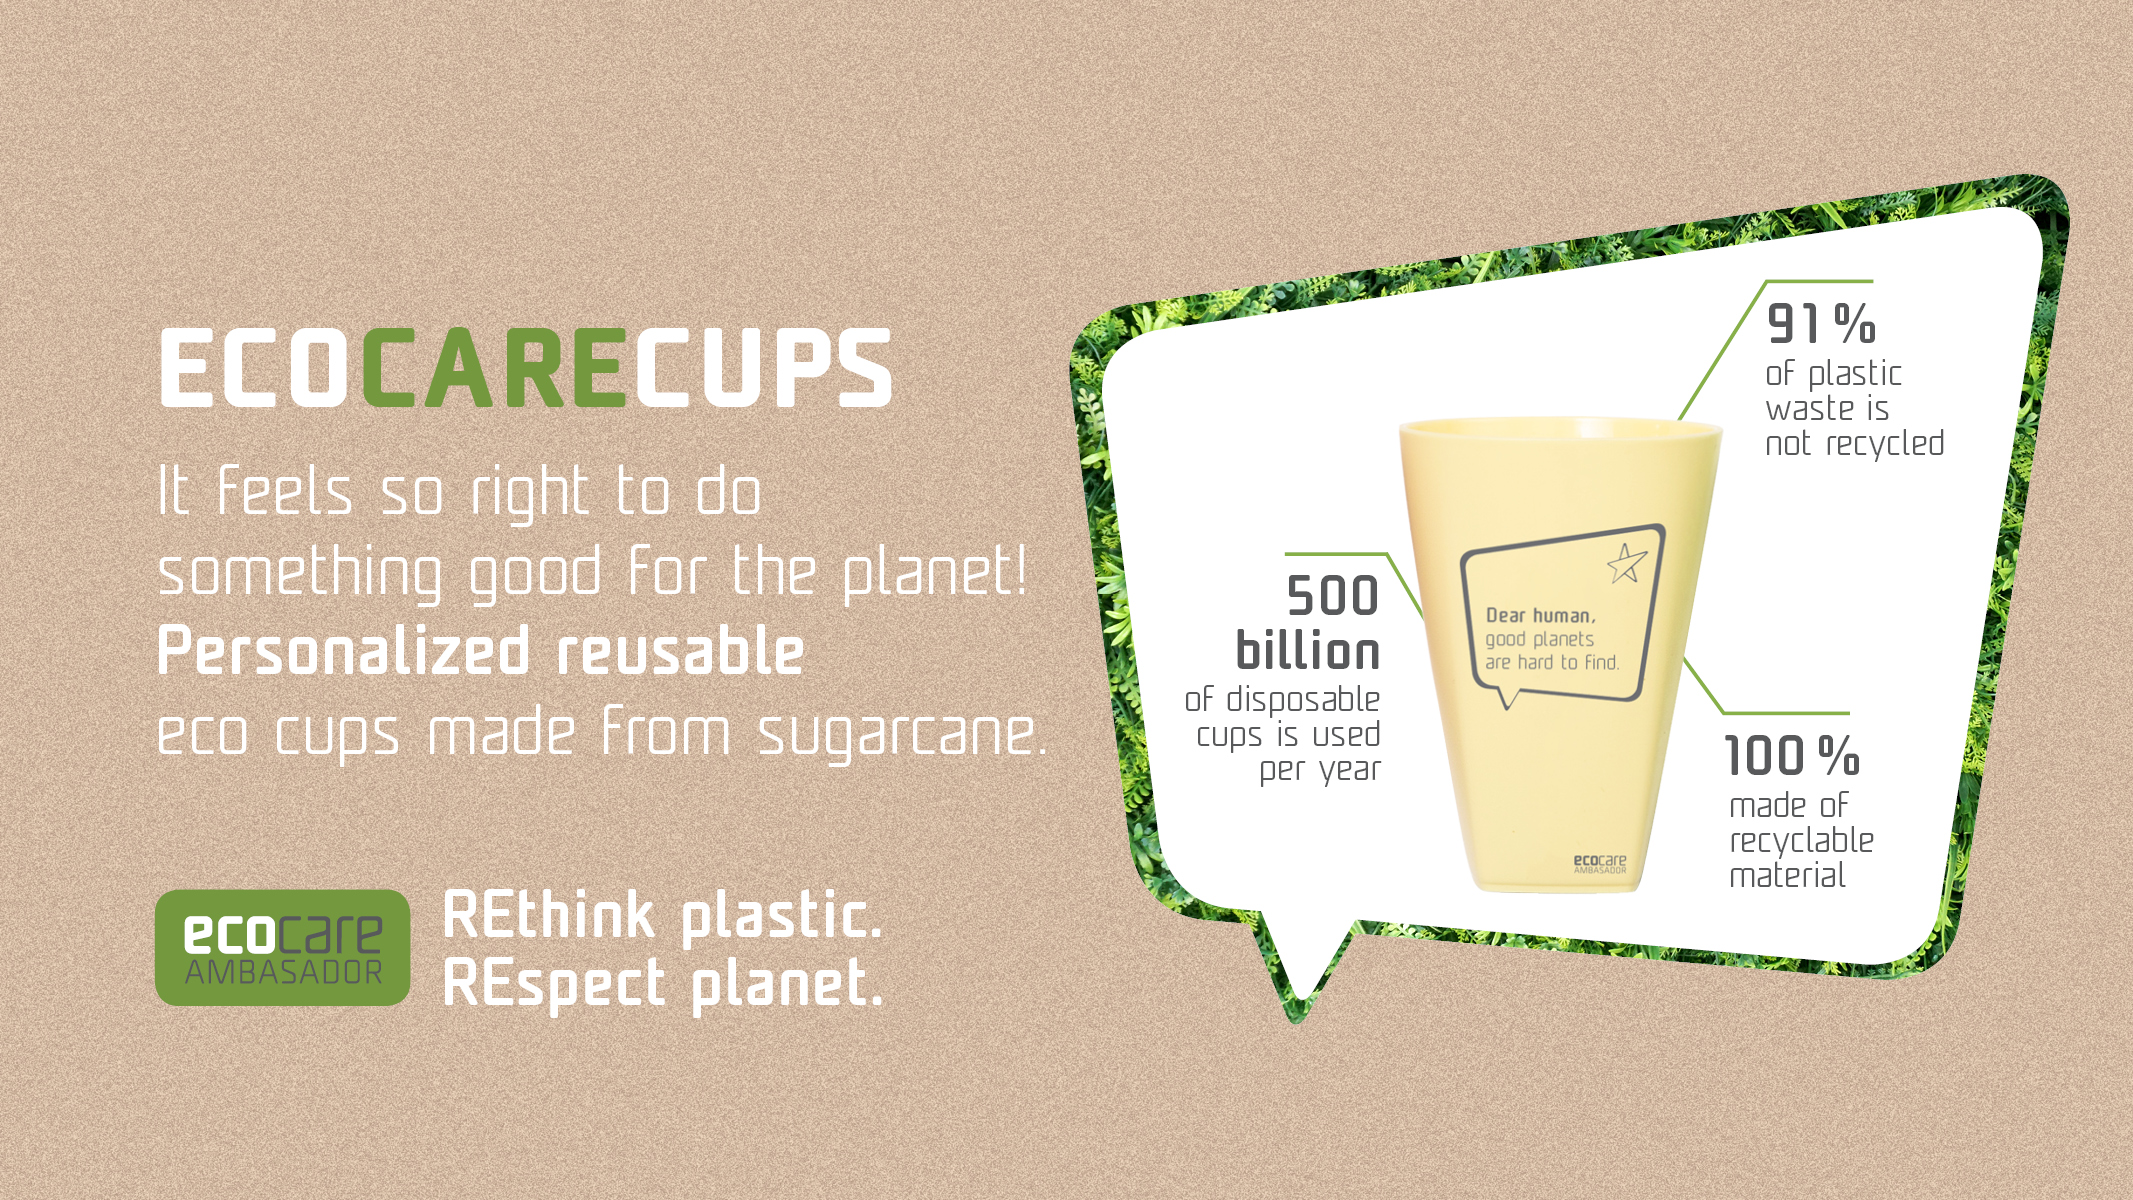 EcoCare cup